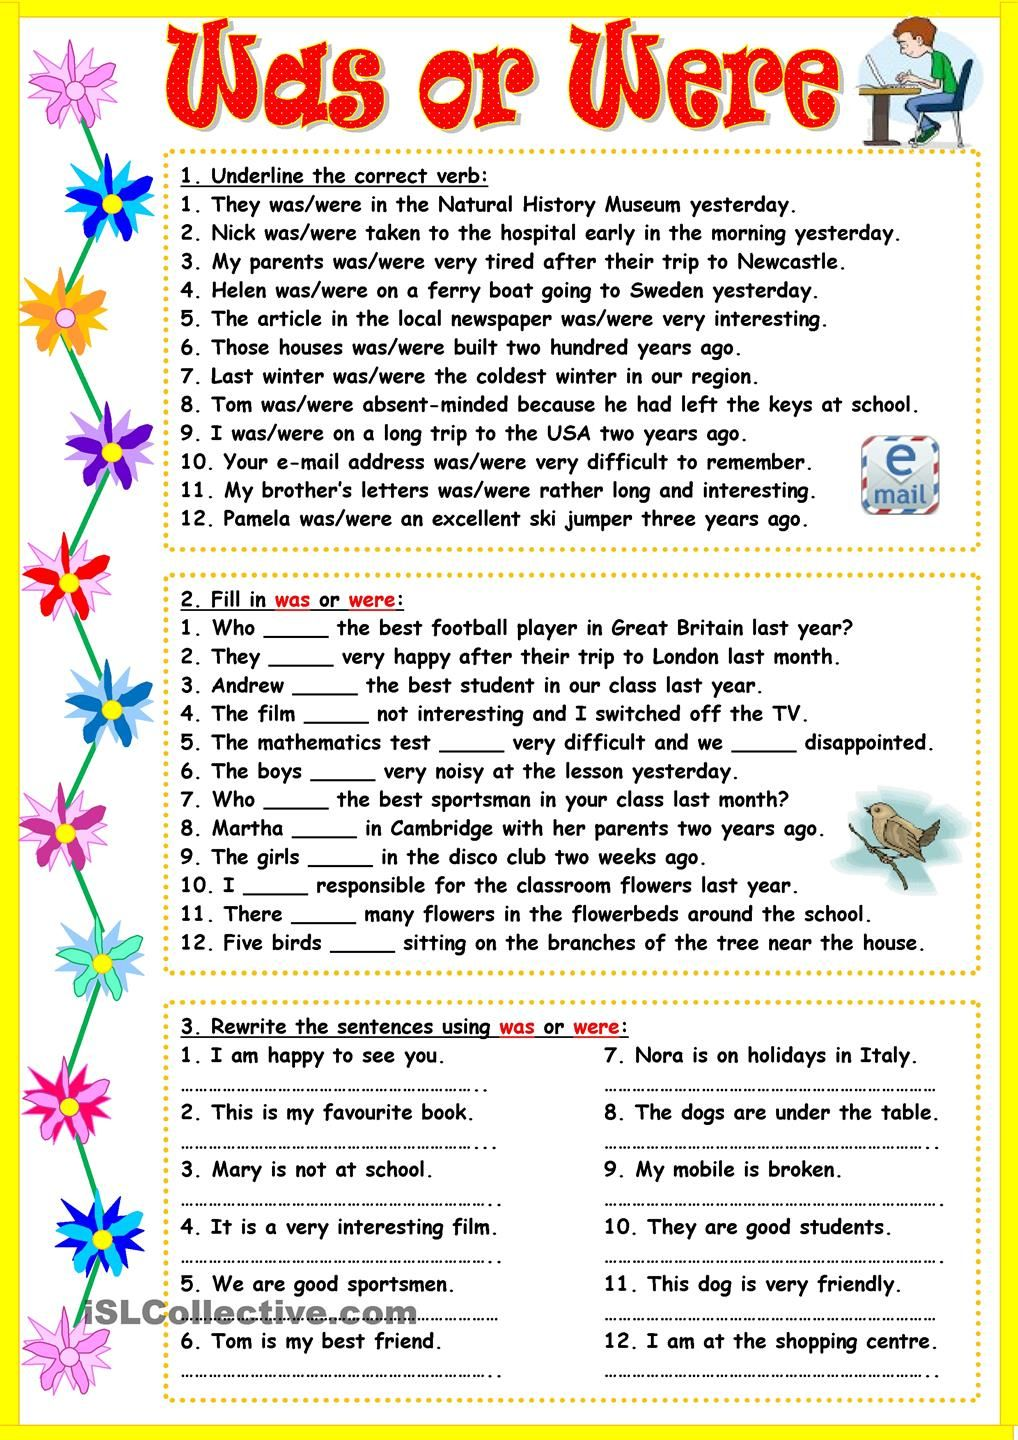 worksheet Were And Where Worksheets xo was were enislcollective jpg engleza pinterest jpg